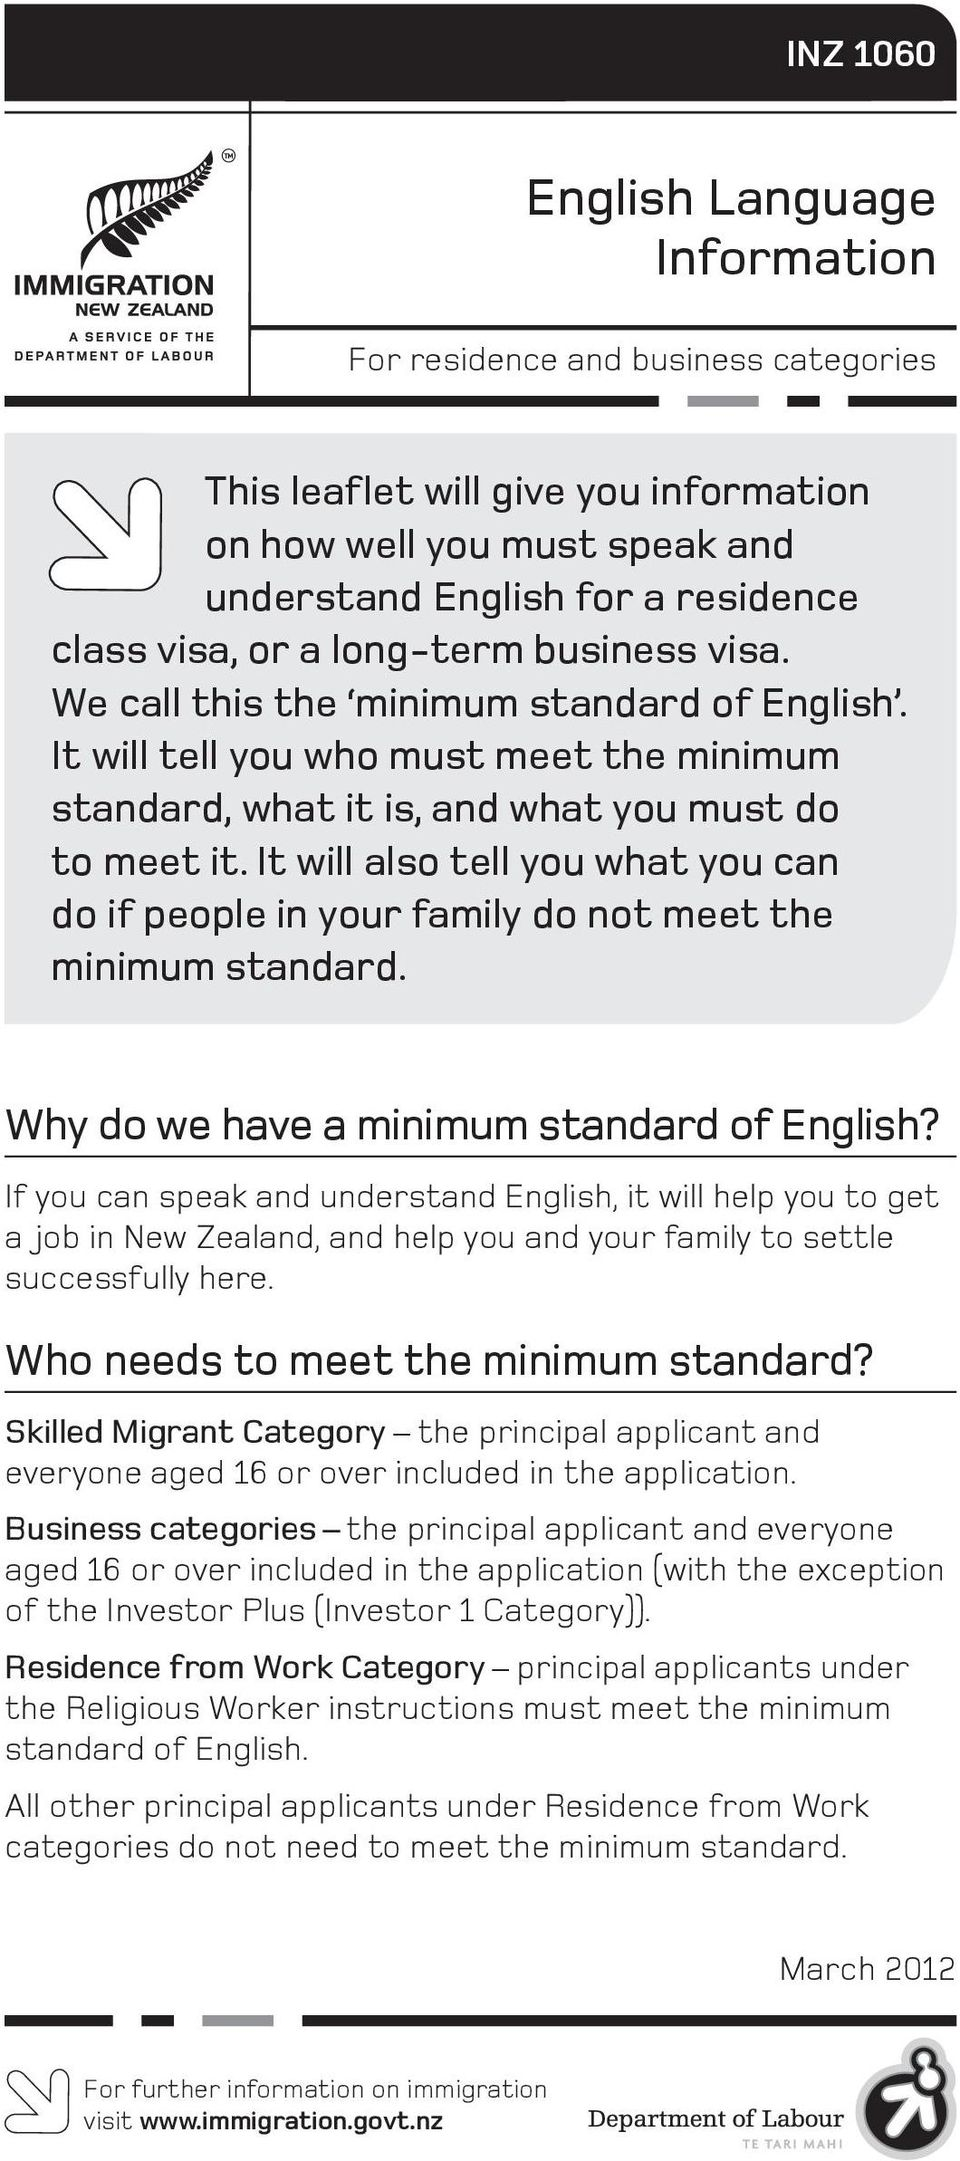 It will also tell you what you can do if people in your family do not meet the minimum standard. Why do we have a minimum standard of English?